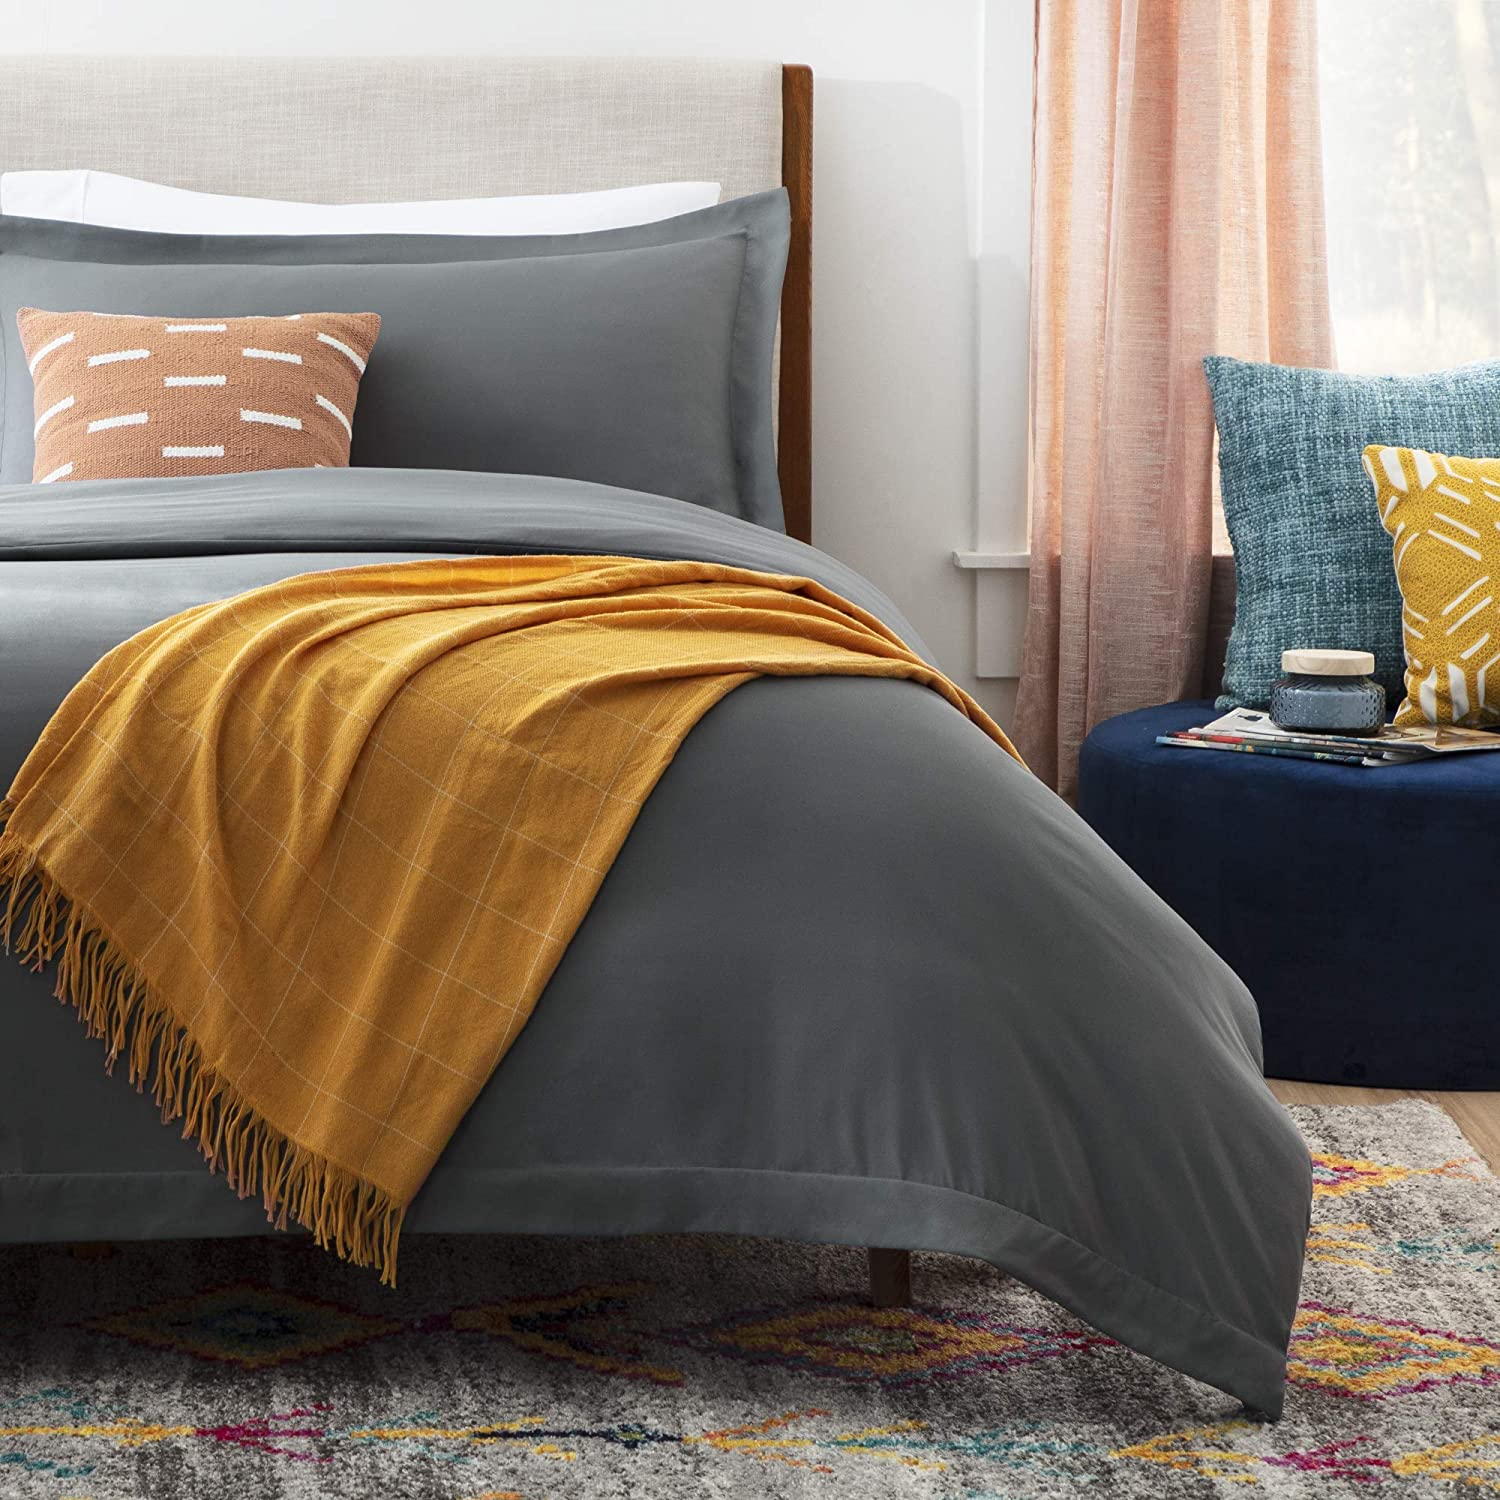 Linenspa Microfiber Duvet Cover - Two Piece Set Includes Duvet Cover and One Sham - Soft Brushed Microfiber - Hypoallergenic, Charcoal, Twin